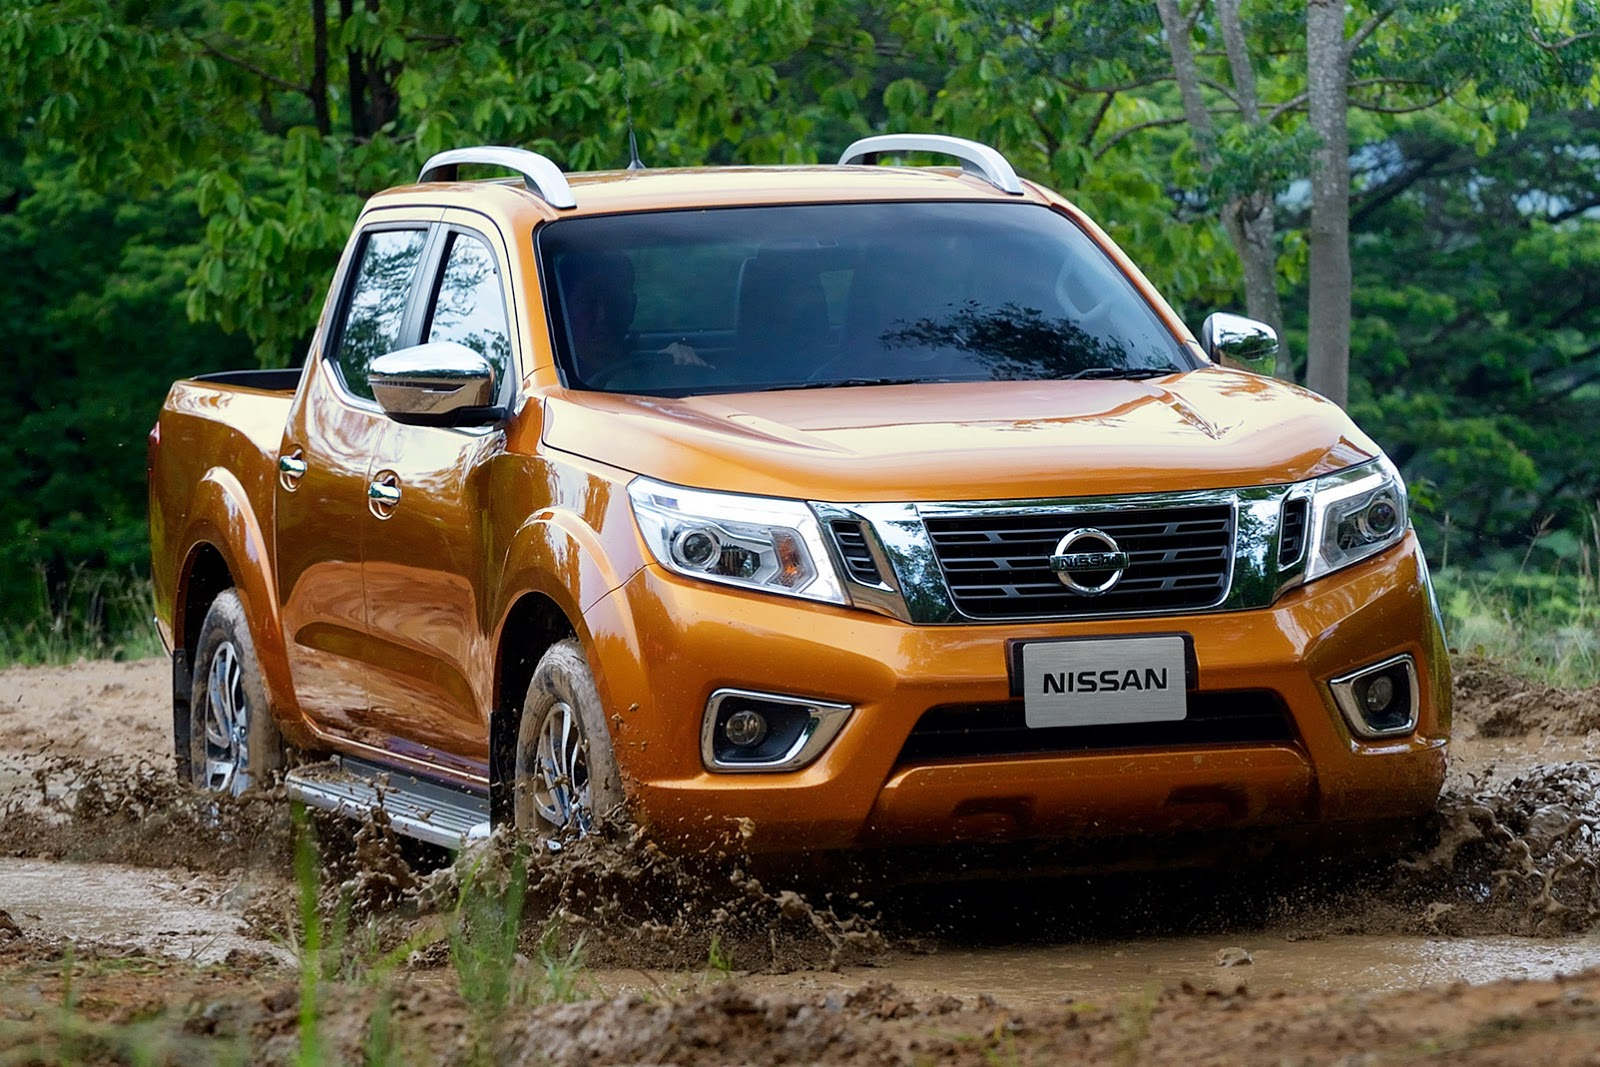 2015 Nissan Navara - photo gallery